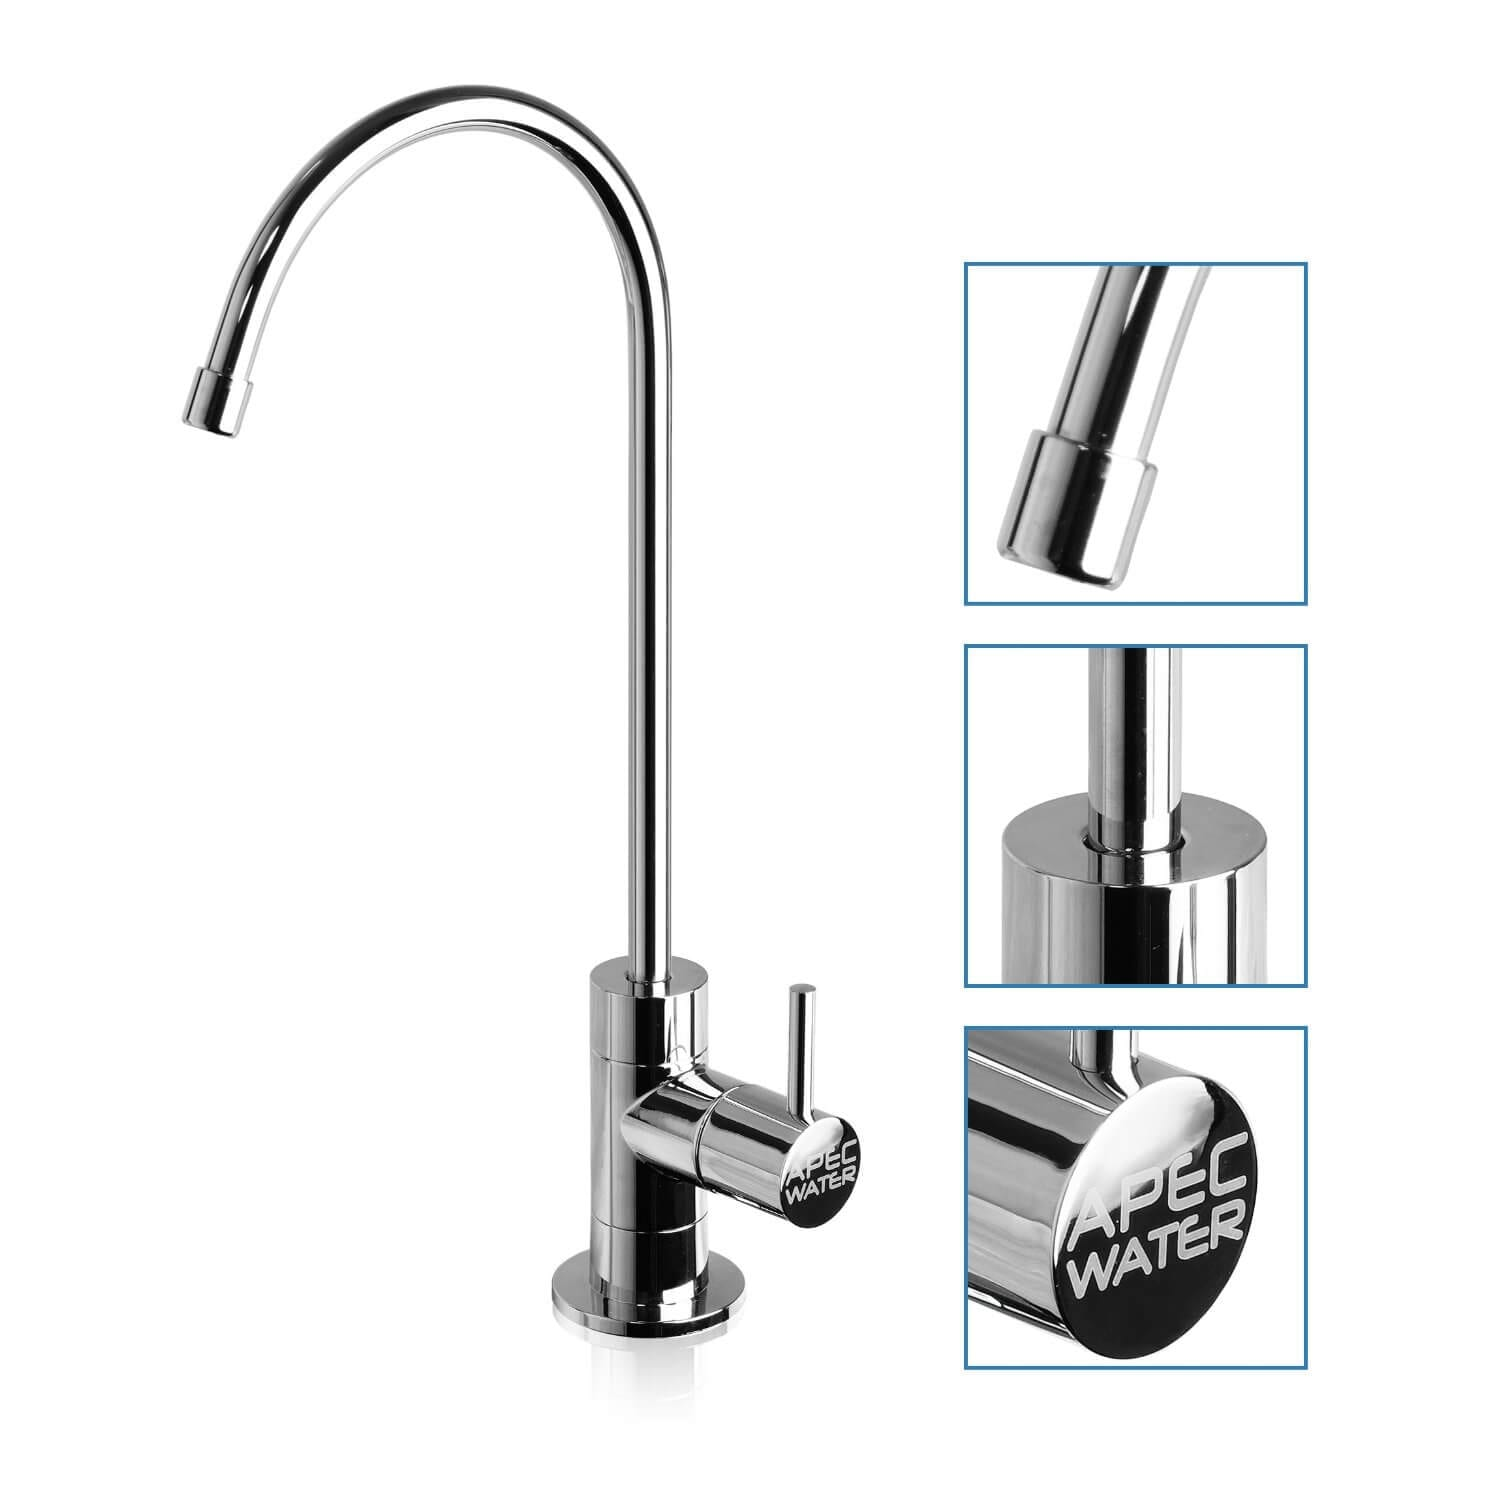 faucets water taps torlan brita way triflow faucet filter tap